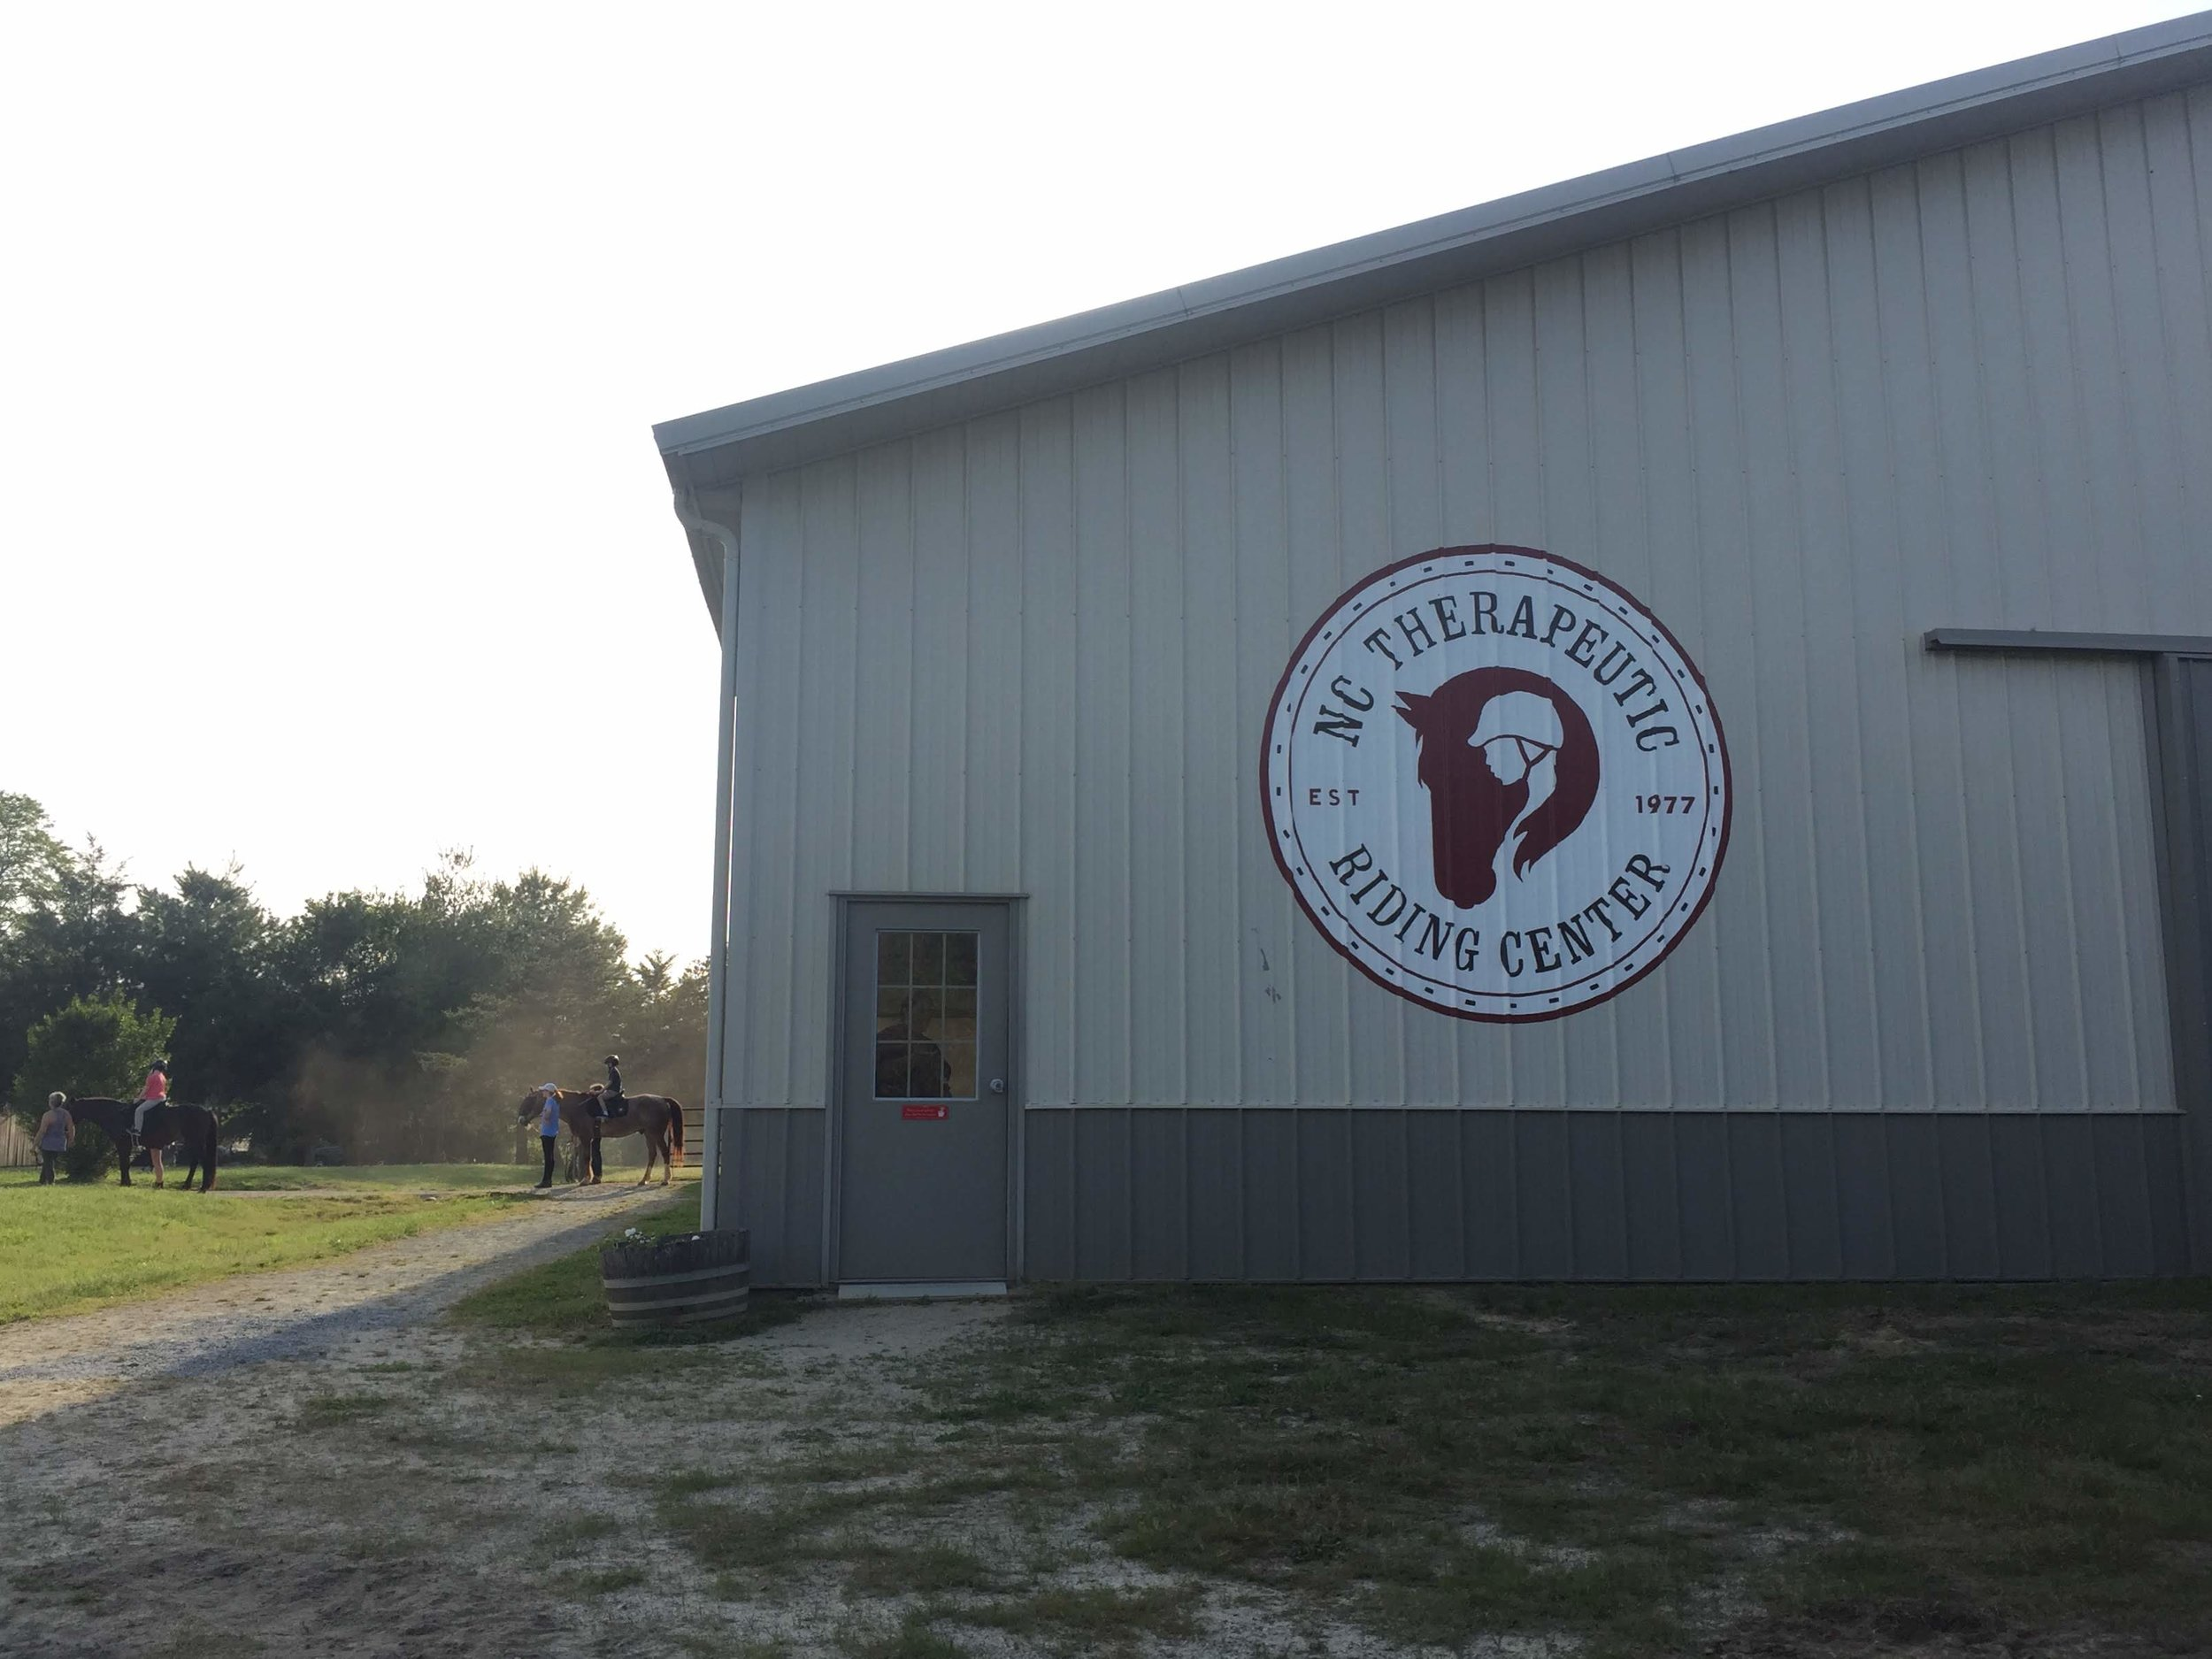 The North Carolina Therapeutic Riding Center.  https://www.nctrcriders.org/